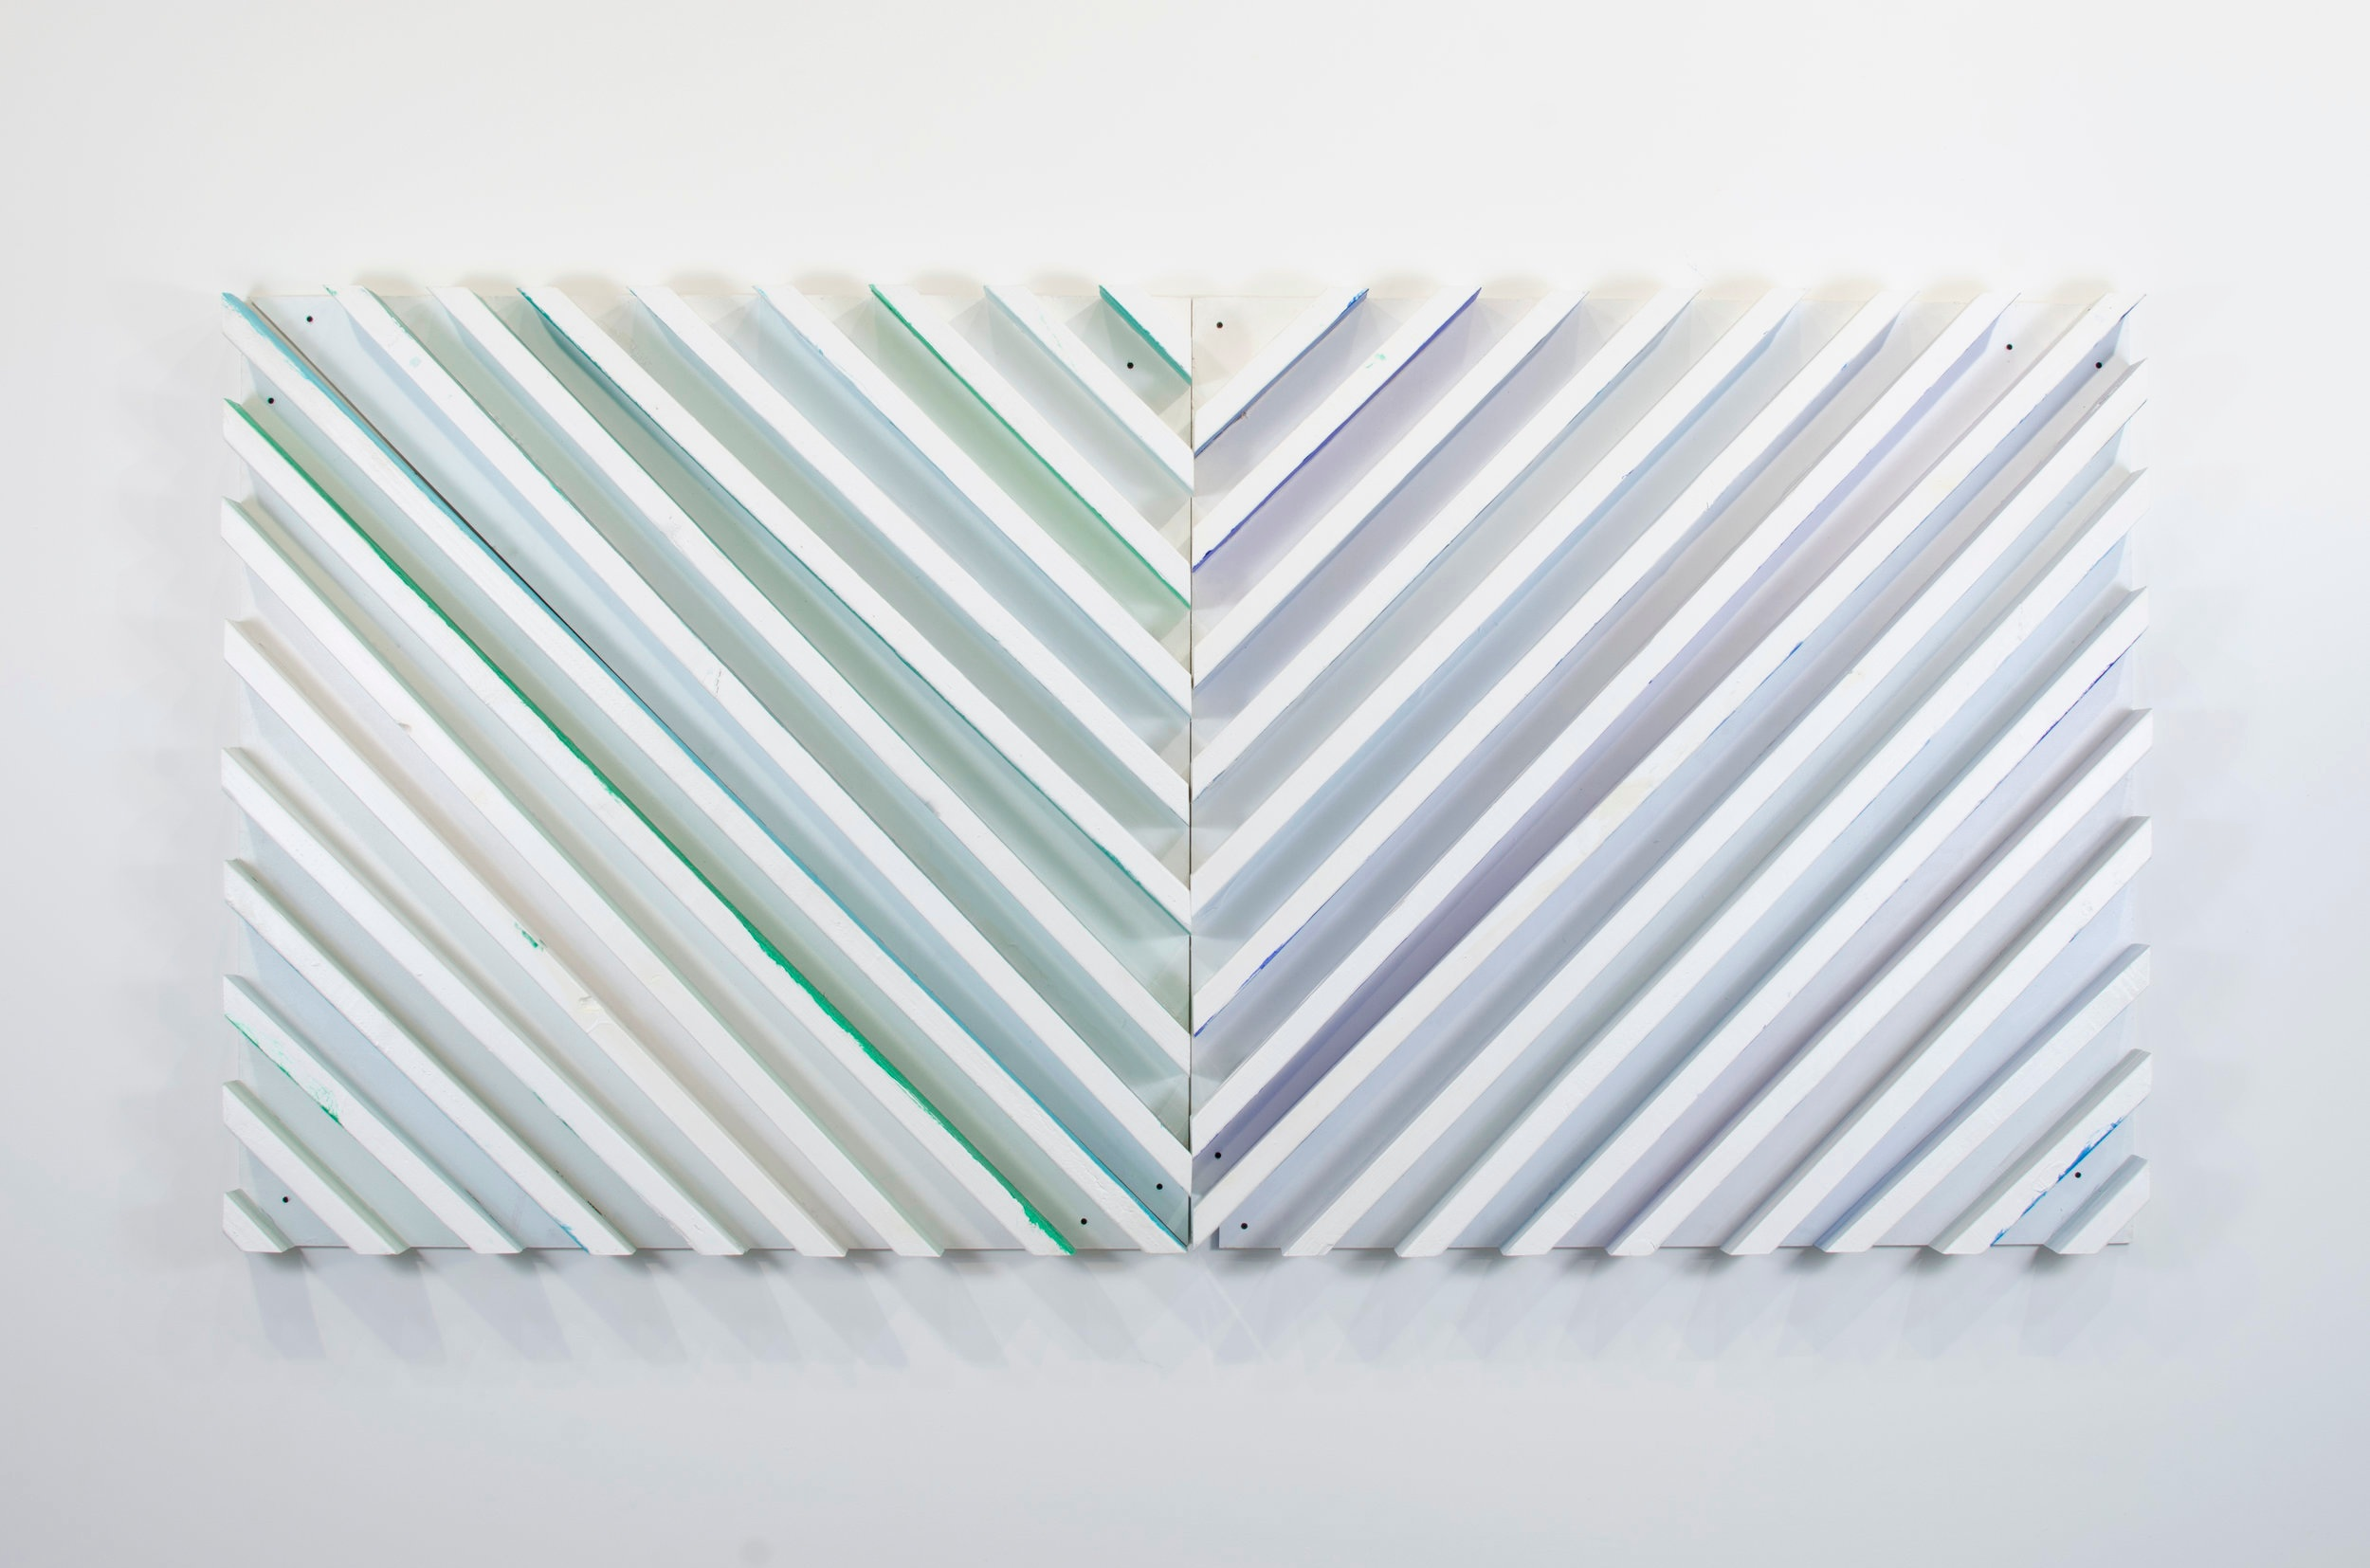 MOD 45 Green/Blue Test , 2014  Acrylic on wood  48 x 96 x 5 1/2 inches